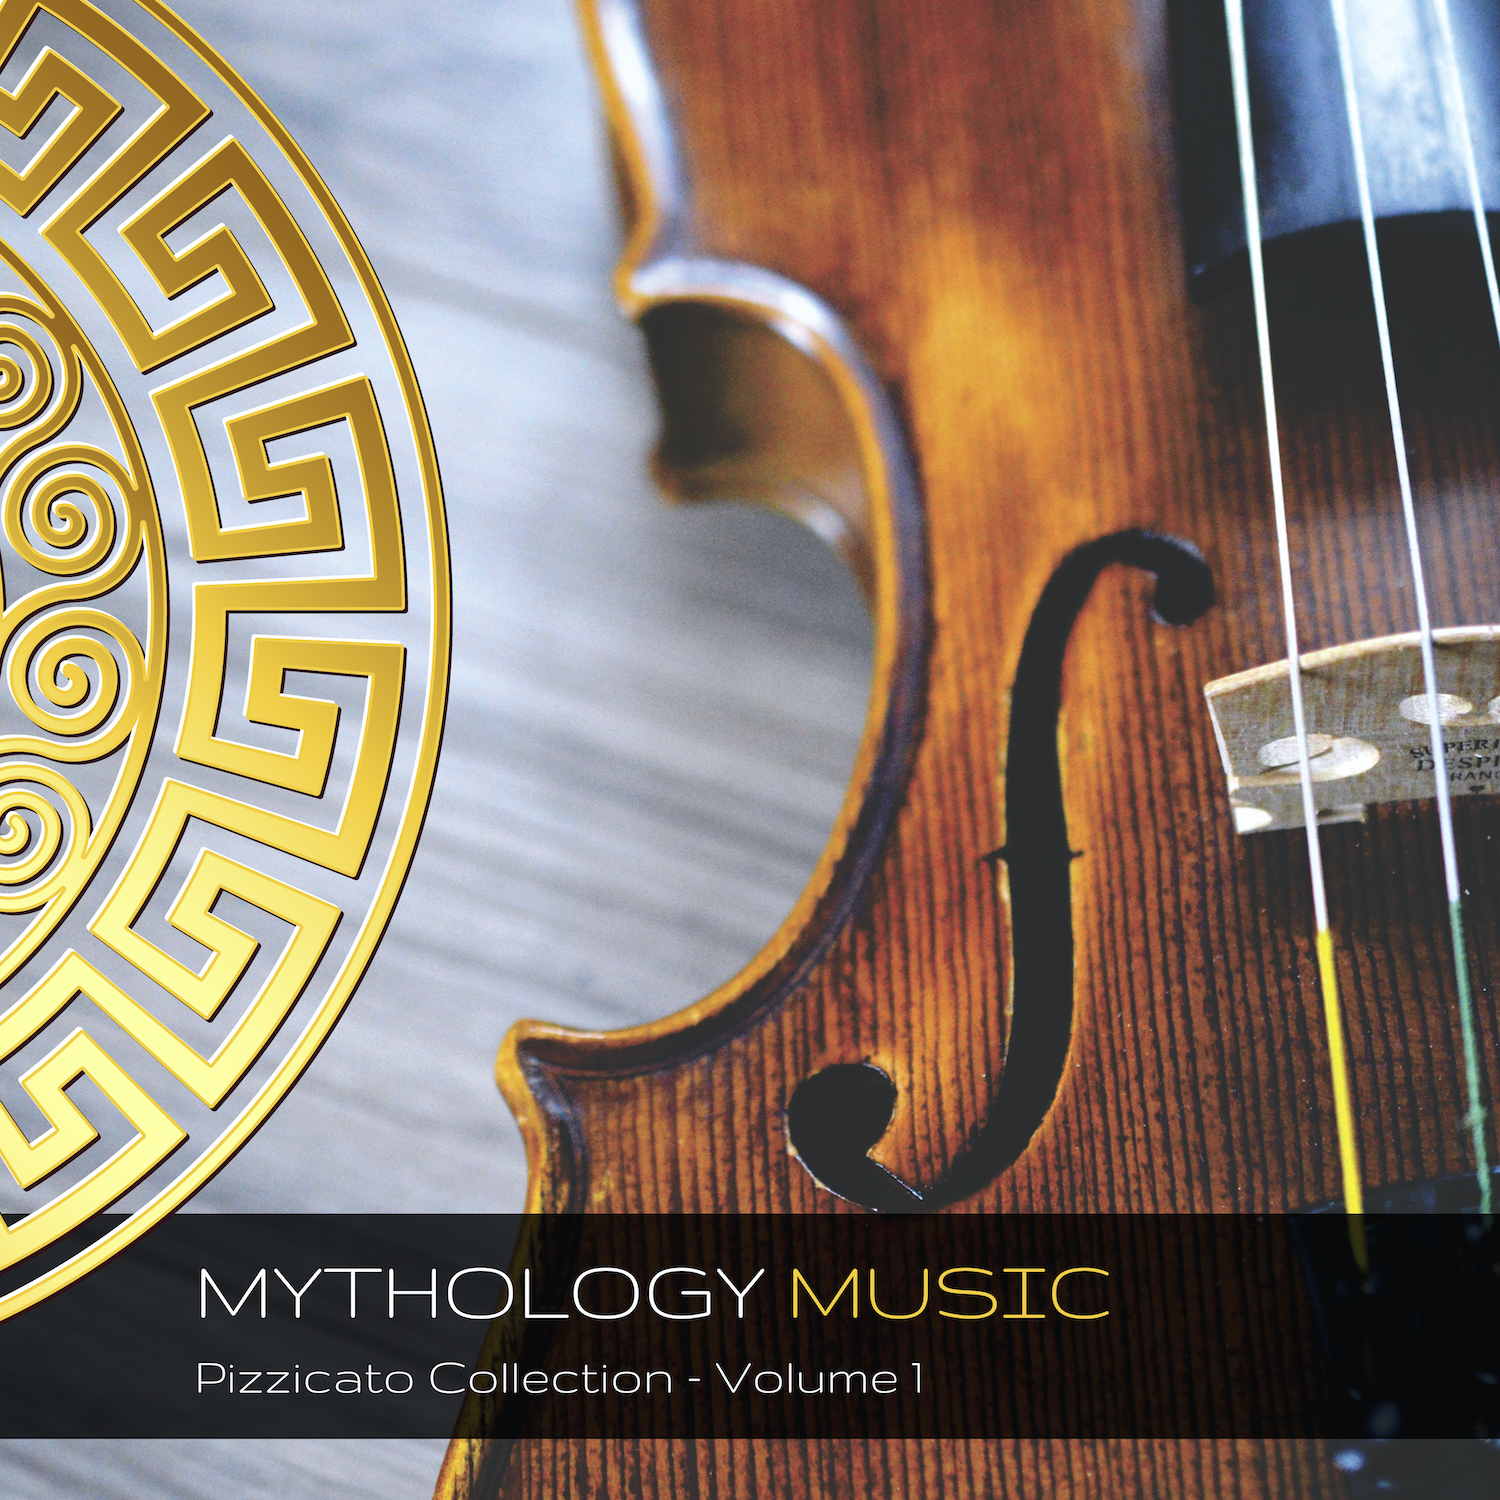 Mythology Music - Pizzicato Collection